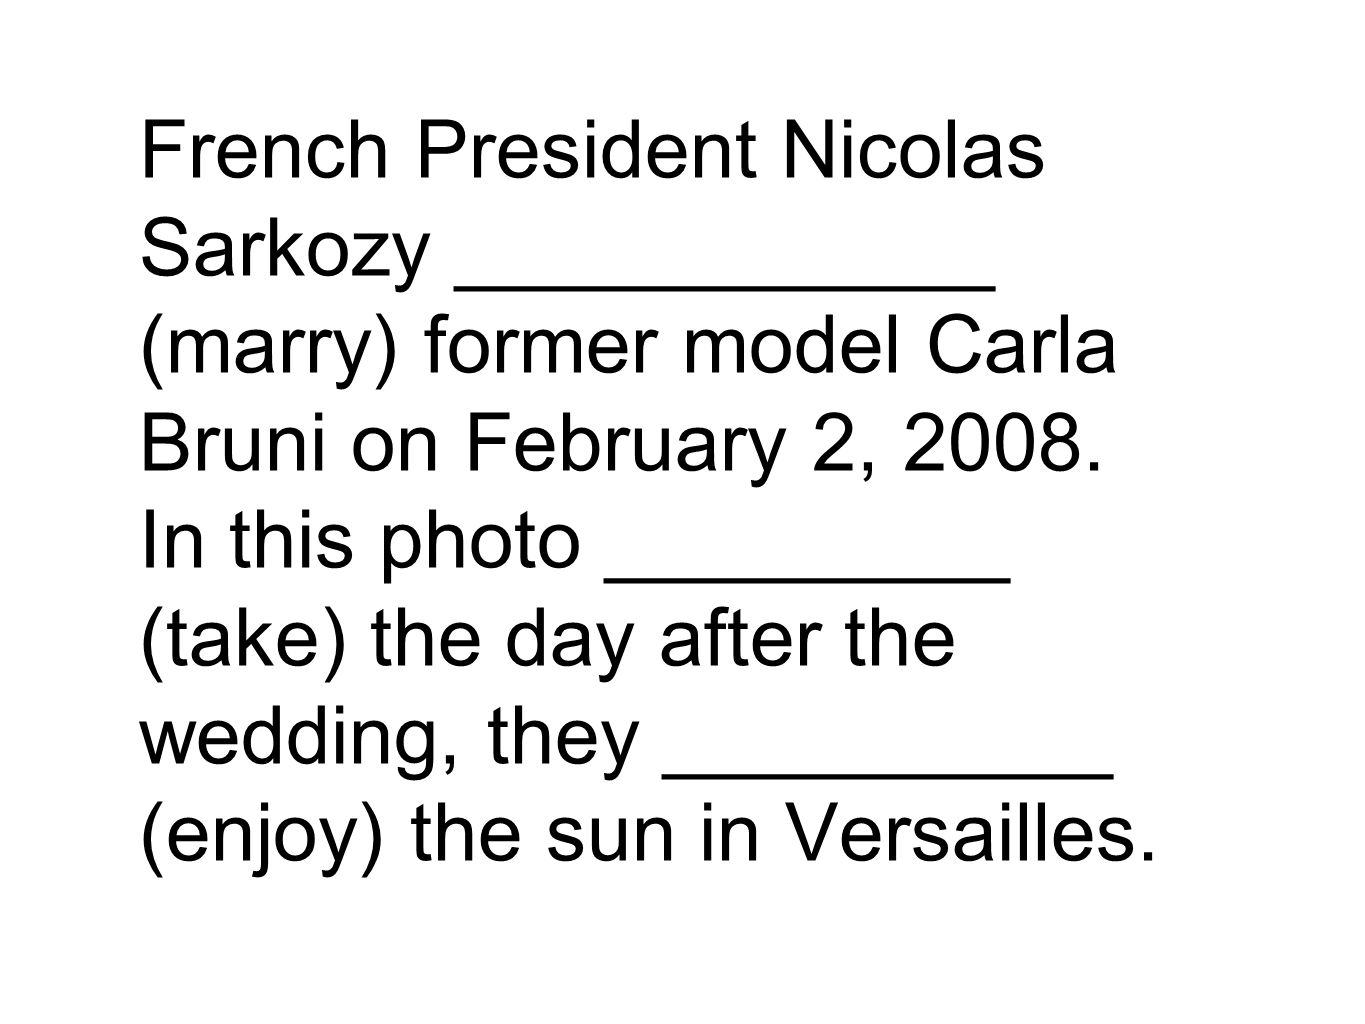 French President Nicolas Sarkozy ____________ (marry) former model Carla Bruni on February 2, 2008.